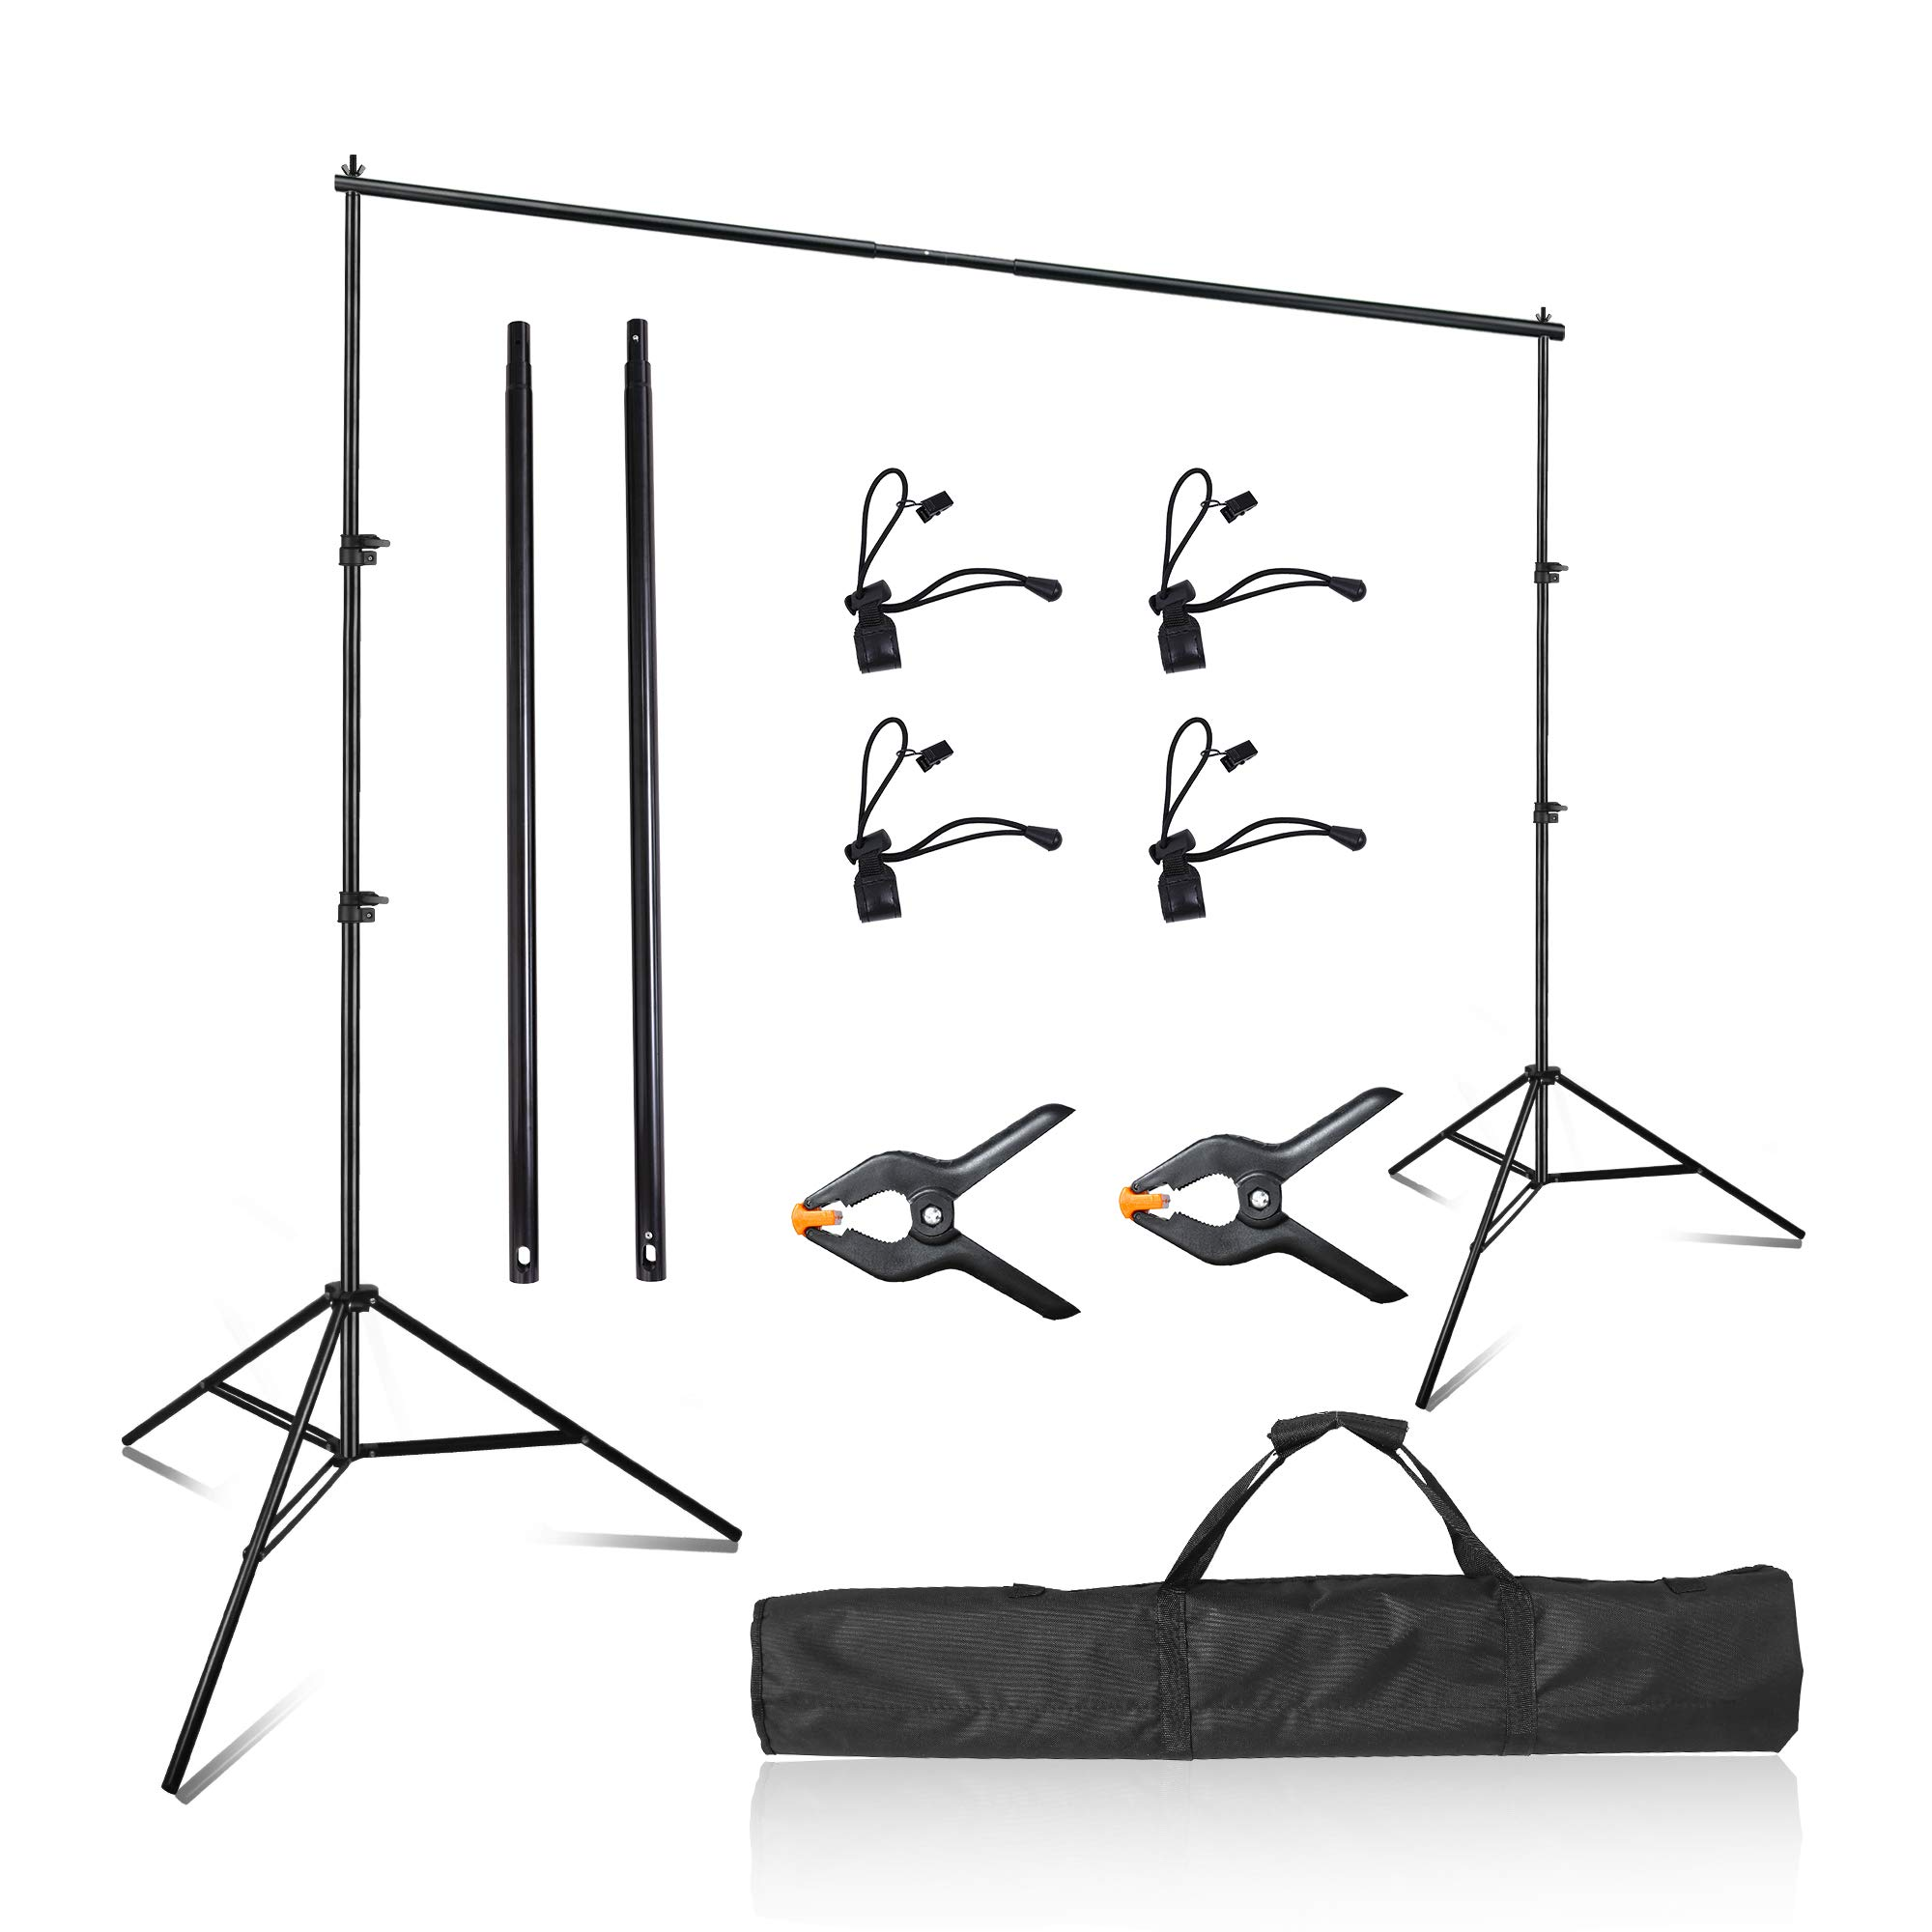 Emart Photo Video Studio 8 x 8 ft Backdrop Stand, Adjustable Photography Muslin Background Support System Kit with Carry Bag by EMART